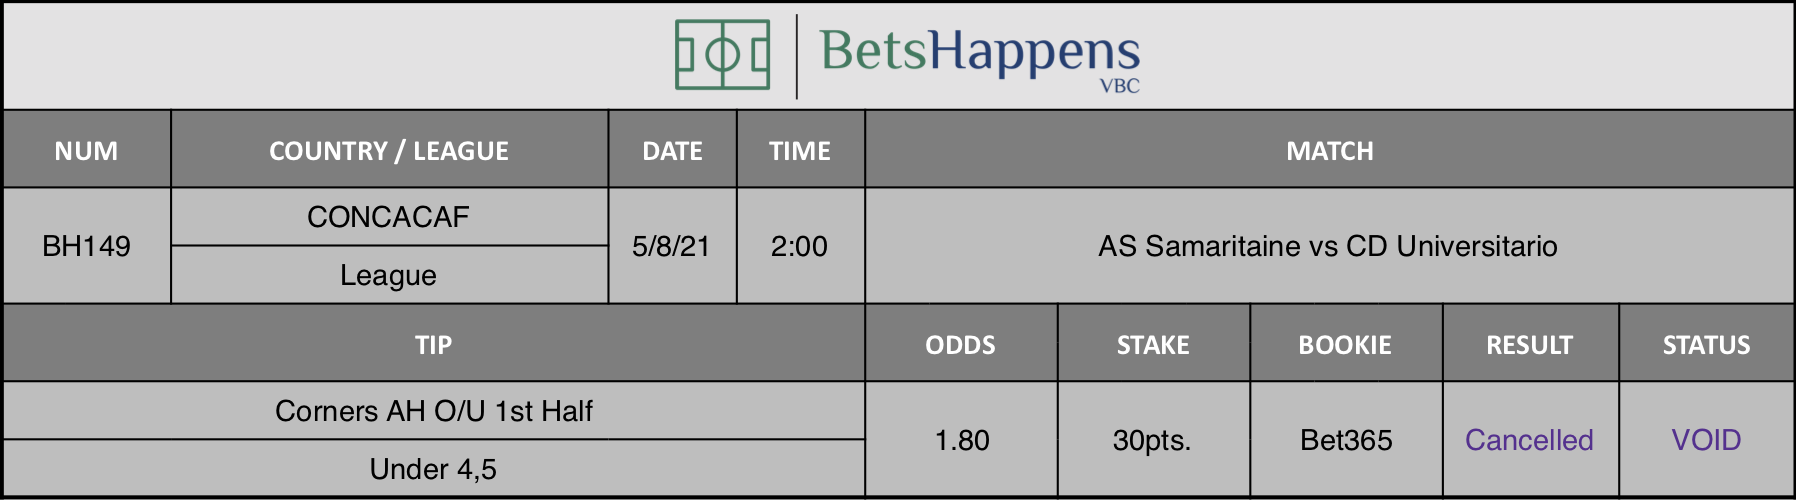 Results of our advice for the AS Samaritaine vs CD Universitario match in which Corners AH O/U 1st Half Under 4,5 is recommended.